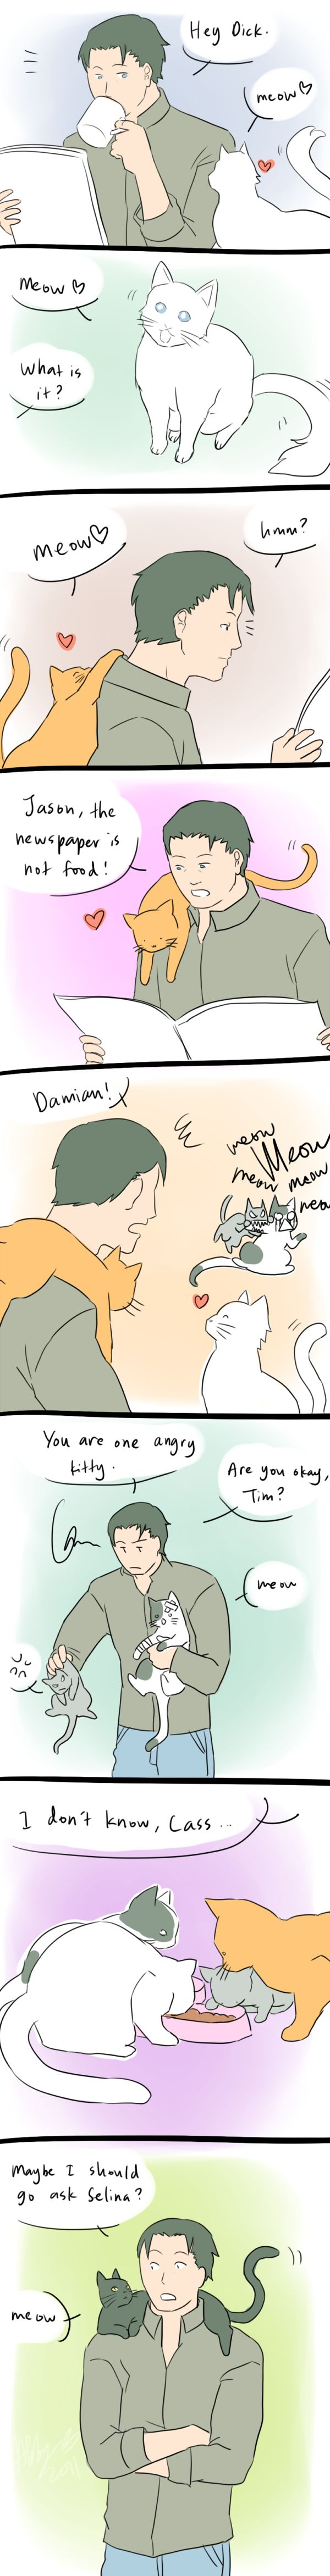 Felines. by *Colours07 on deviantART nice to see batman is a cat person